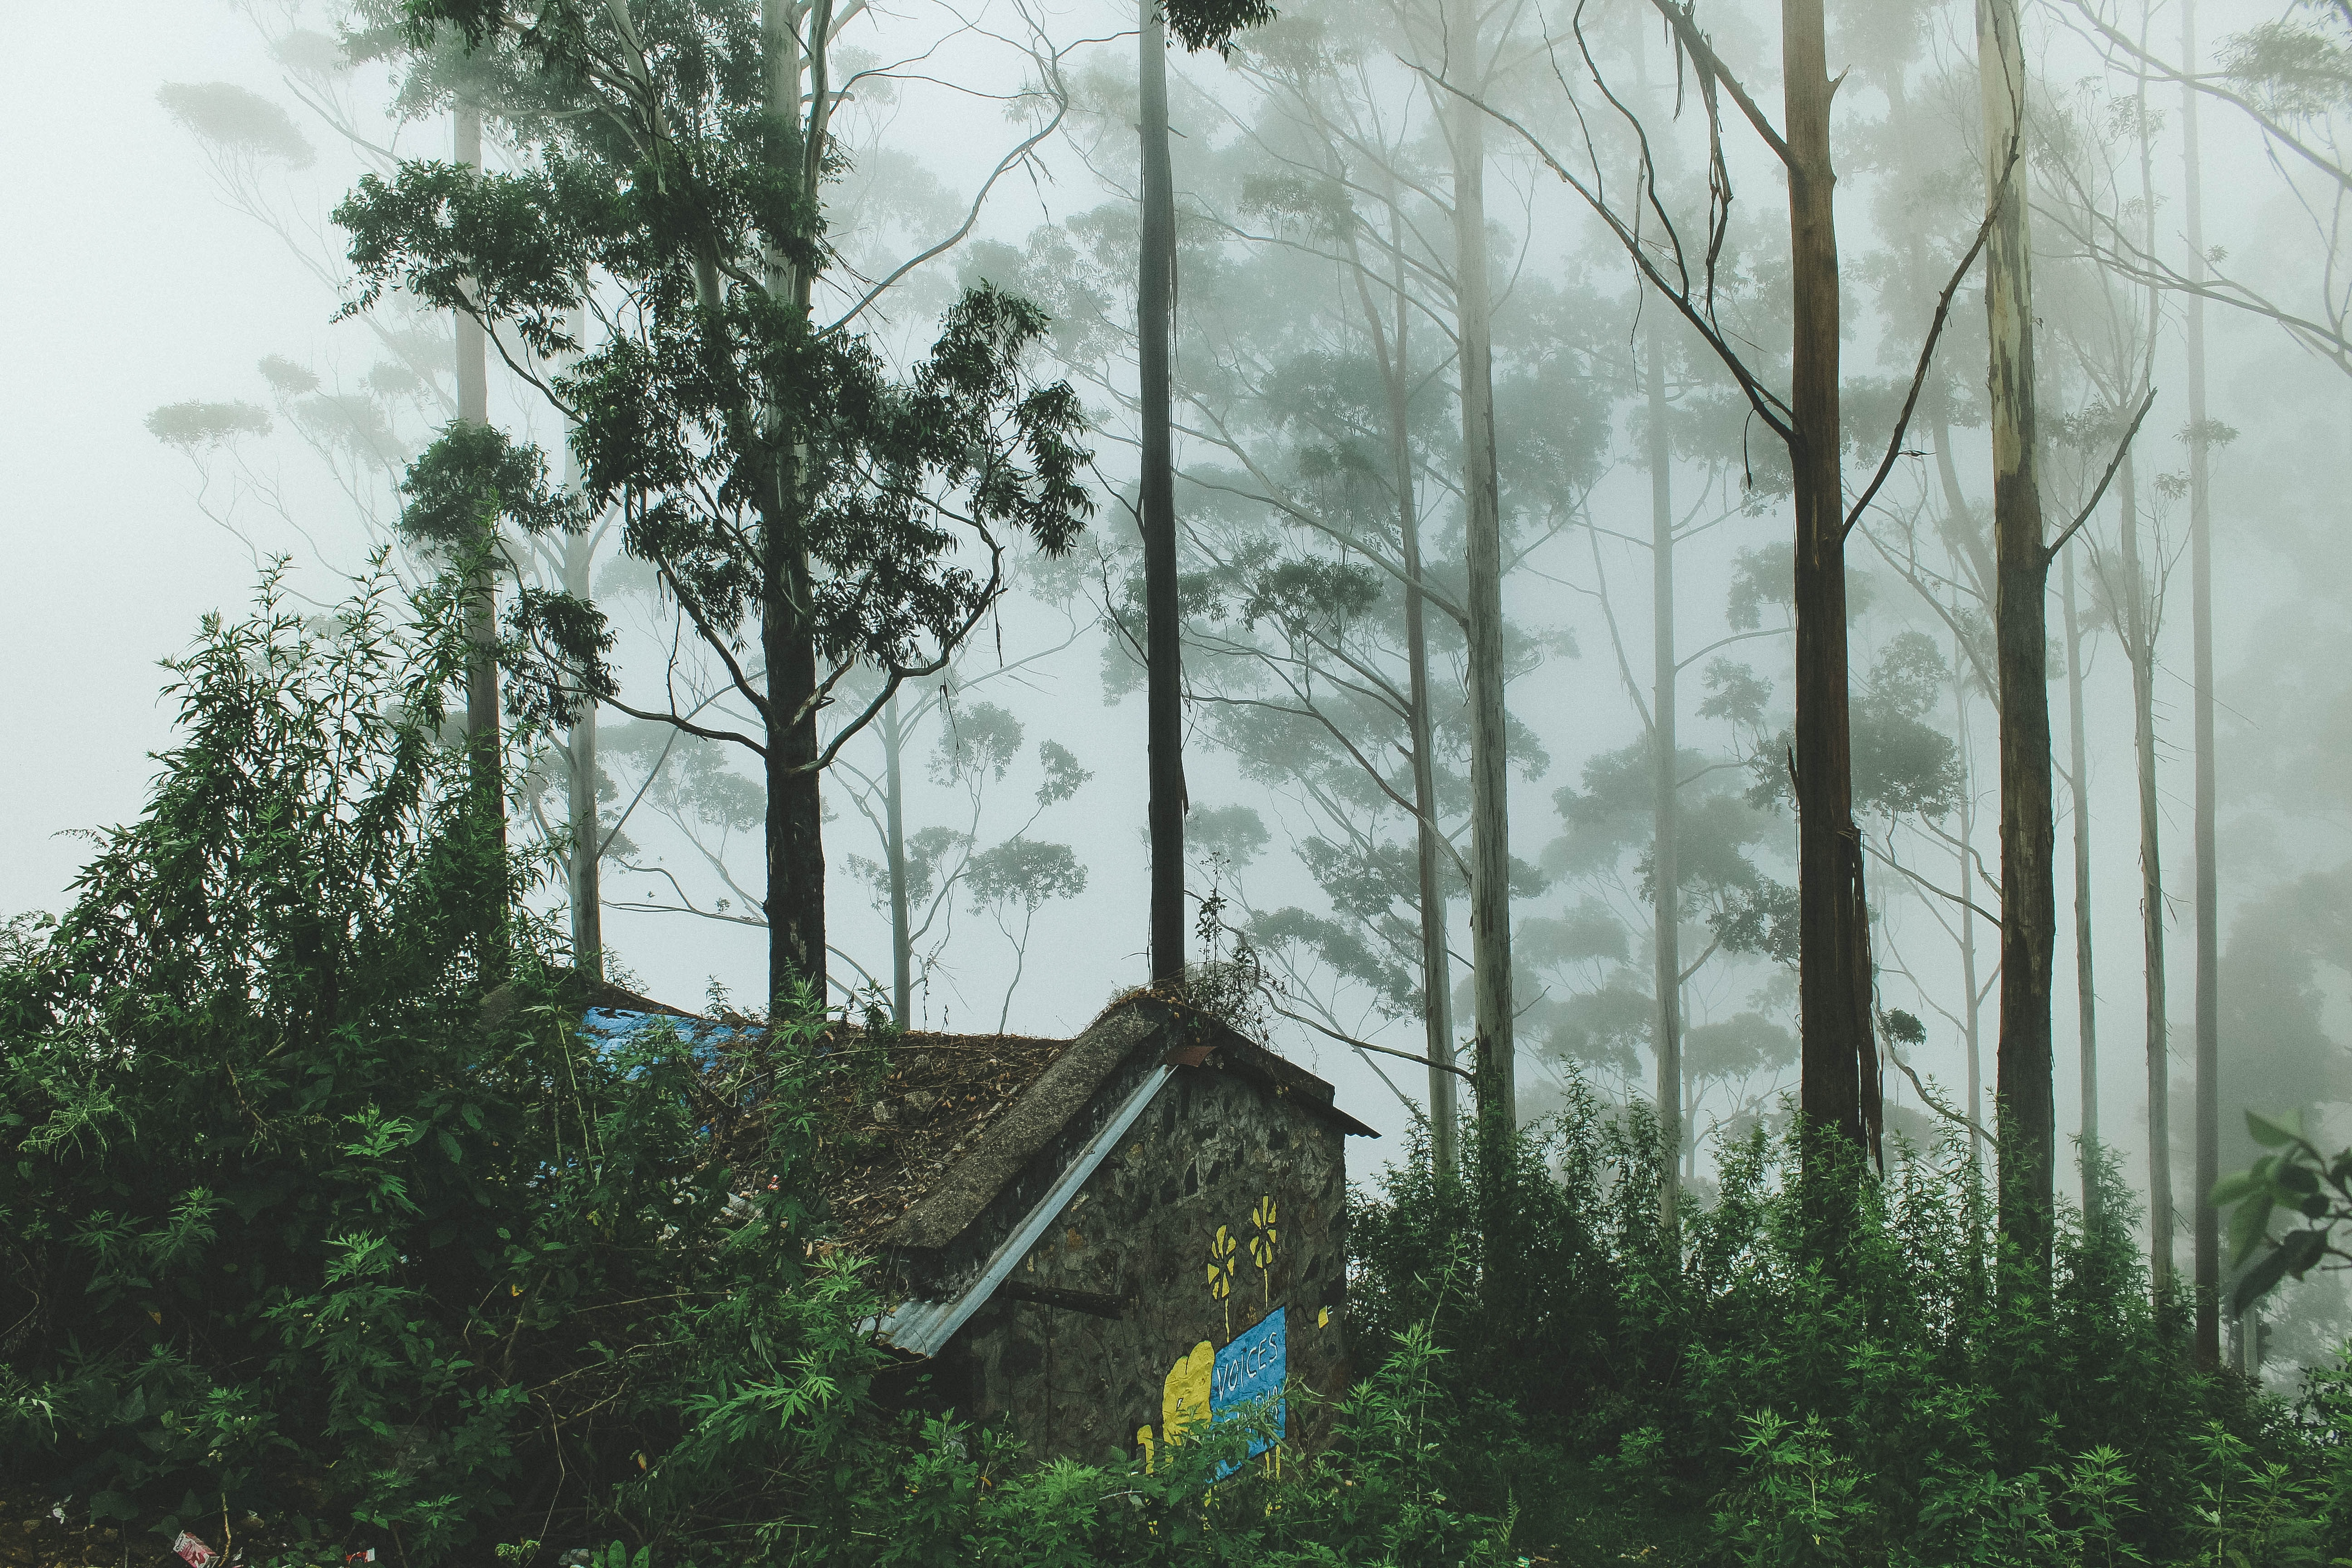 house surrounded with trees during foggy day